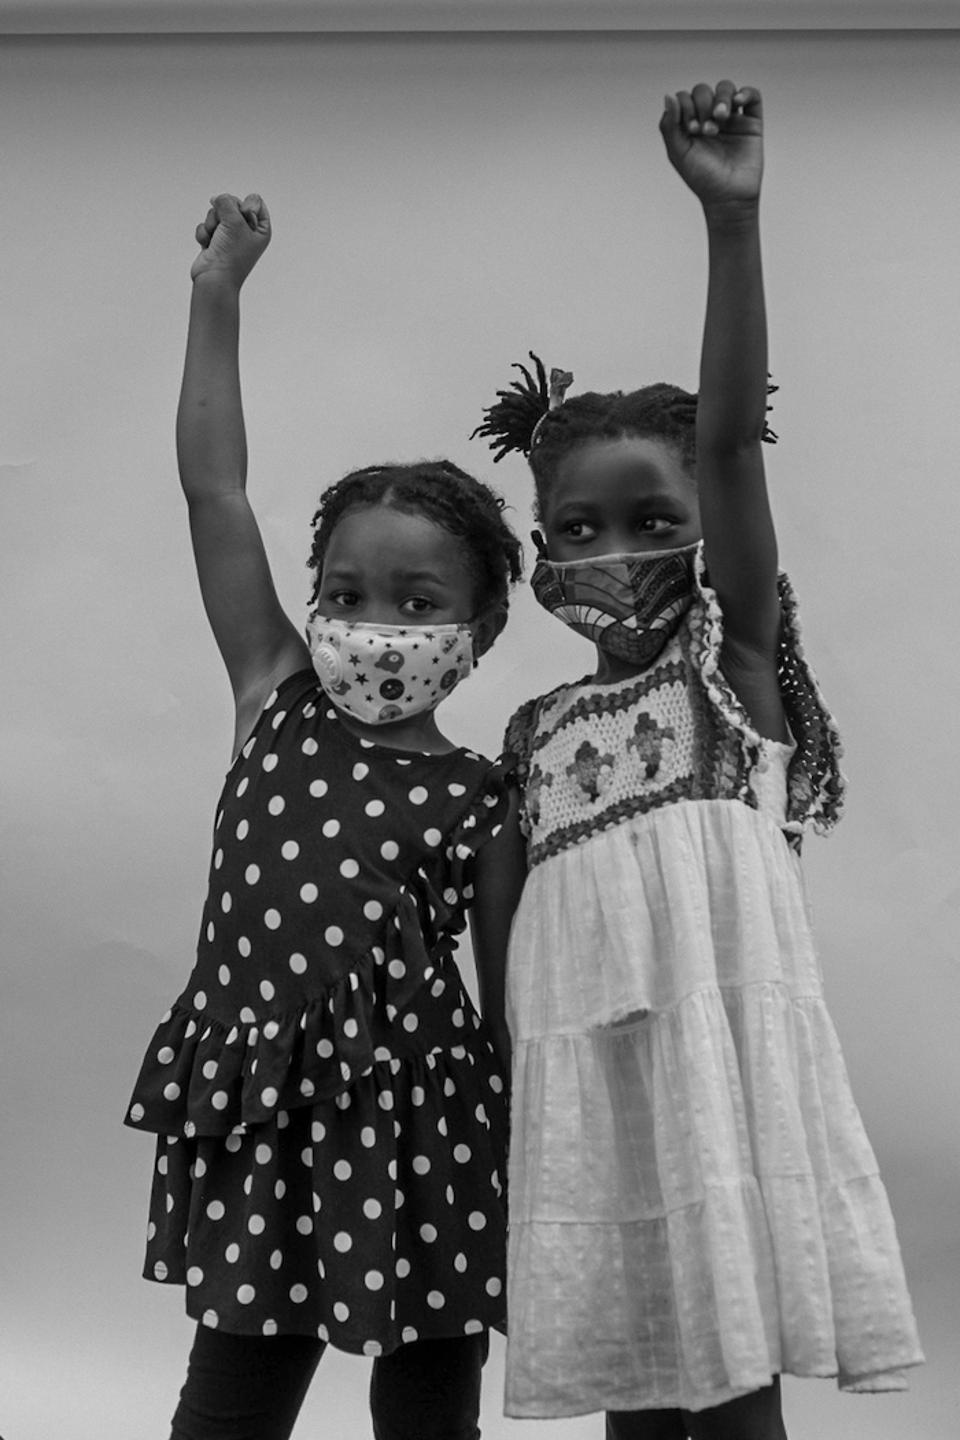 Friends Kennedy (left) and Amina reunited at the Children's March outside the Brooklyn Public Library in Brooklyn, New York in June, 2020.